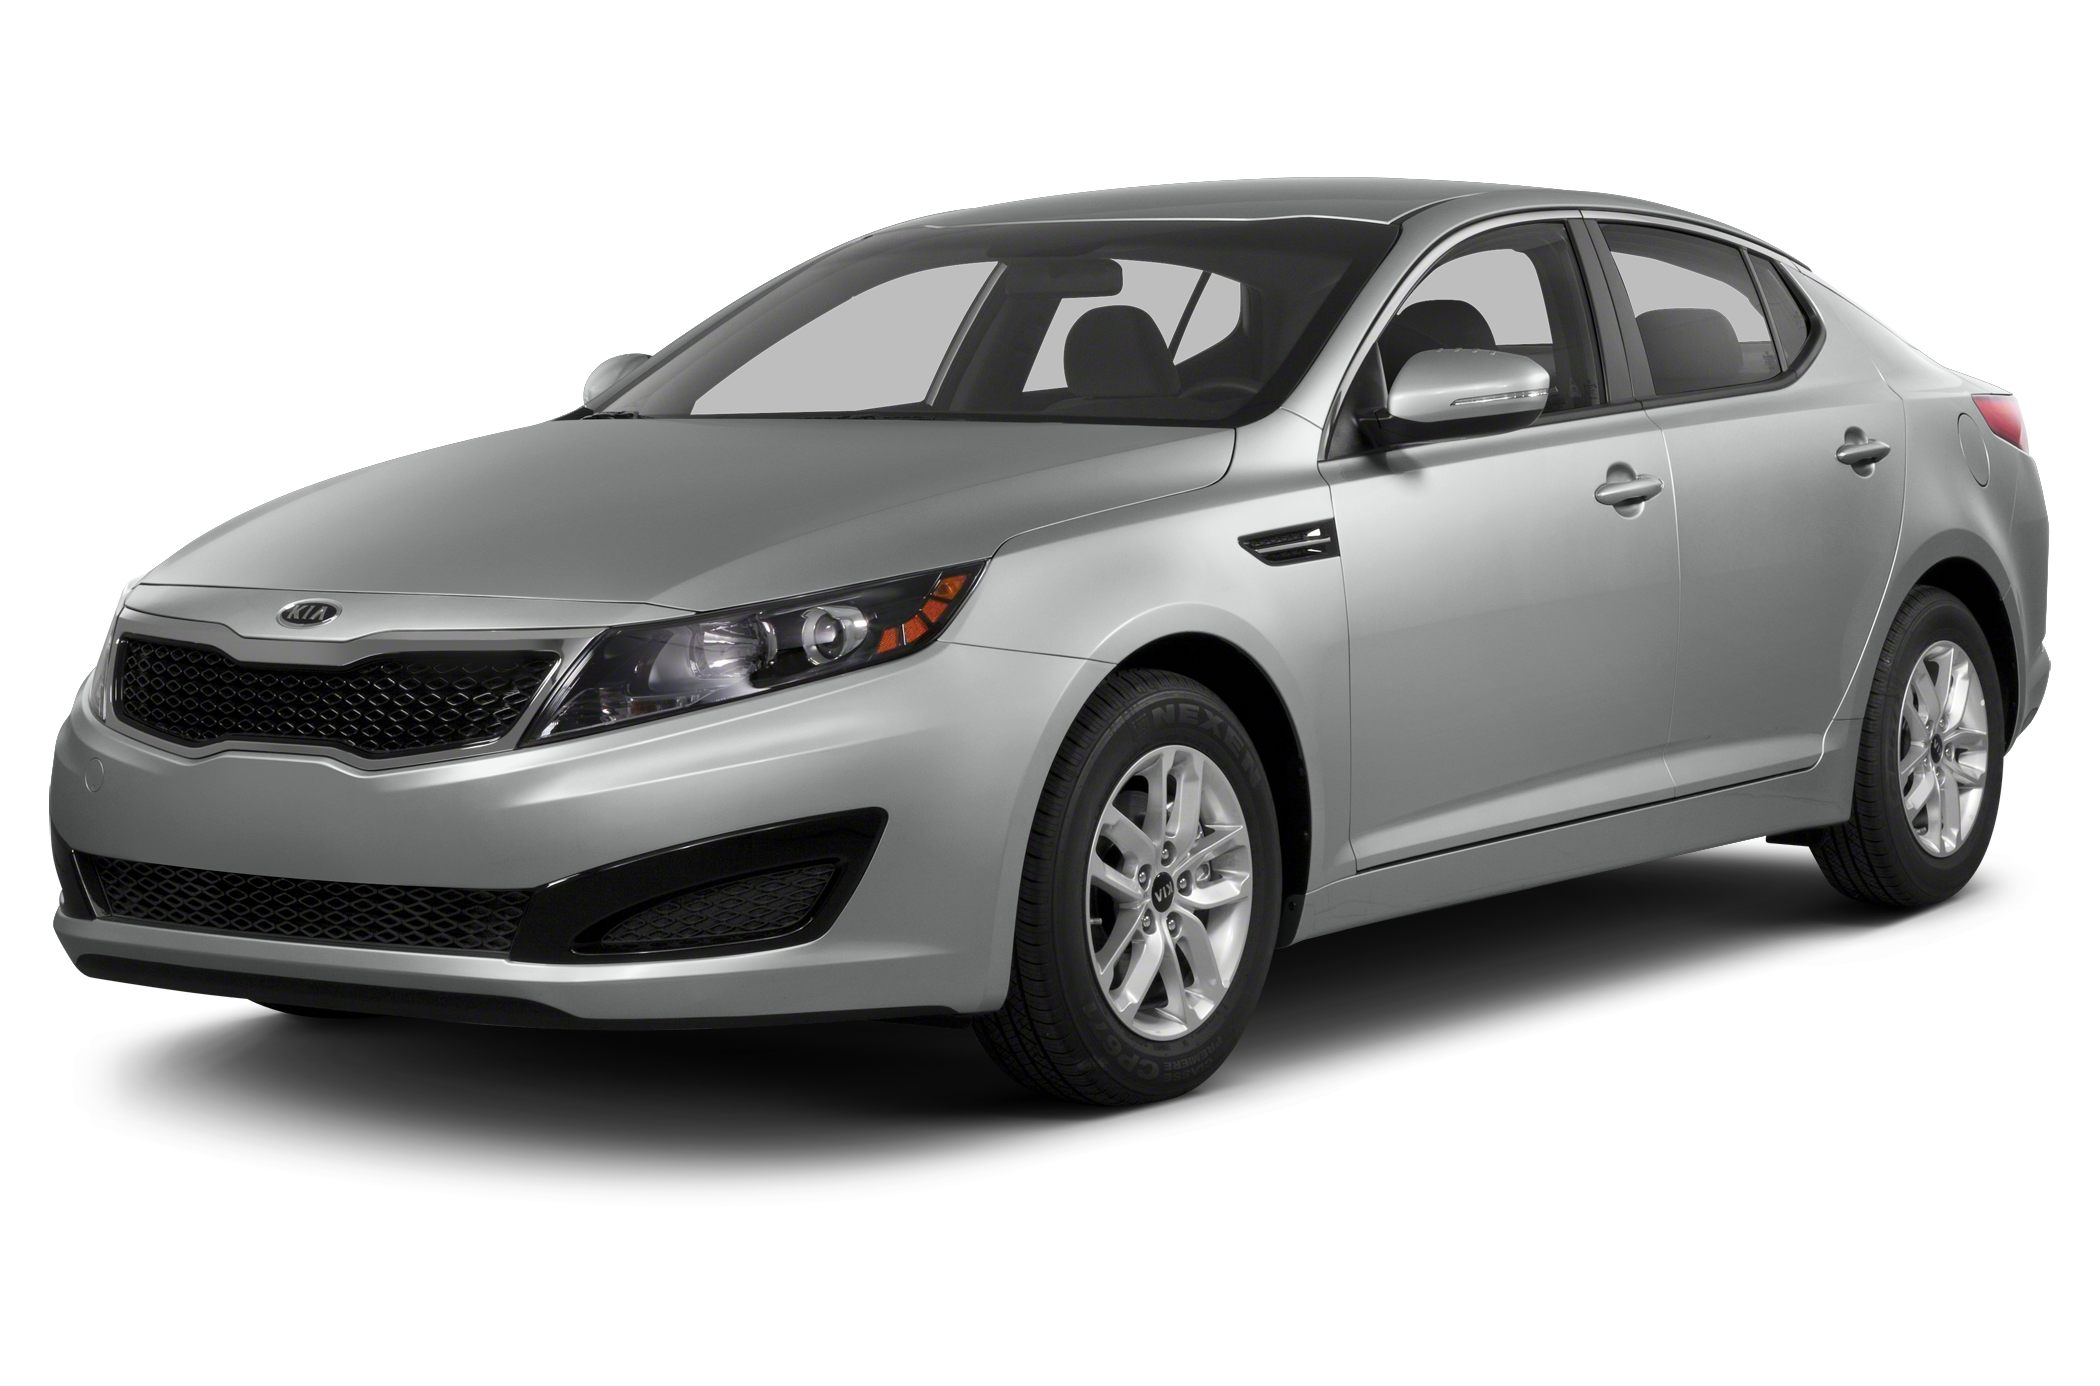 2013 Kia Optima EX 2013 Kia Optima EX in Bright Silver Metallic Bluetooth for Phone and Audio Str